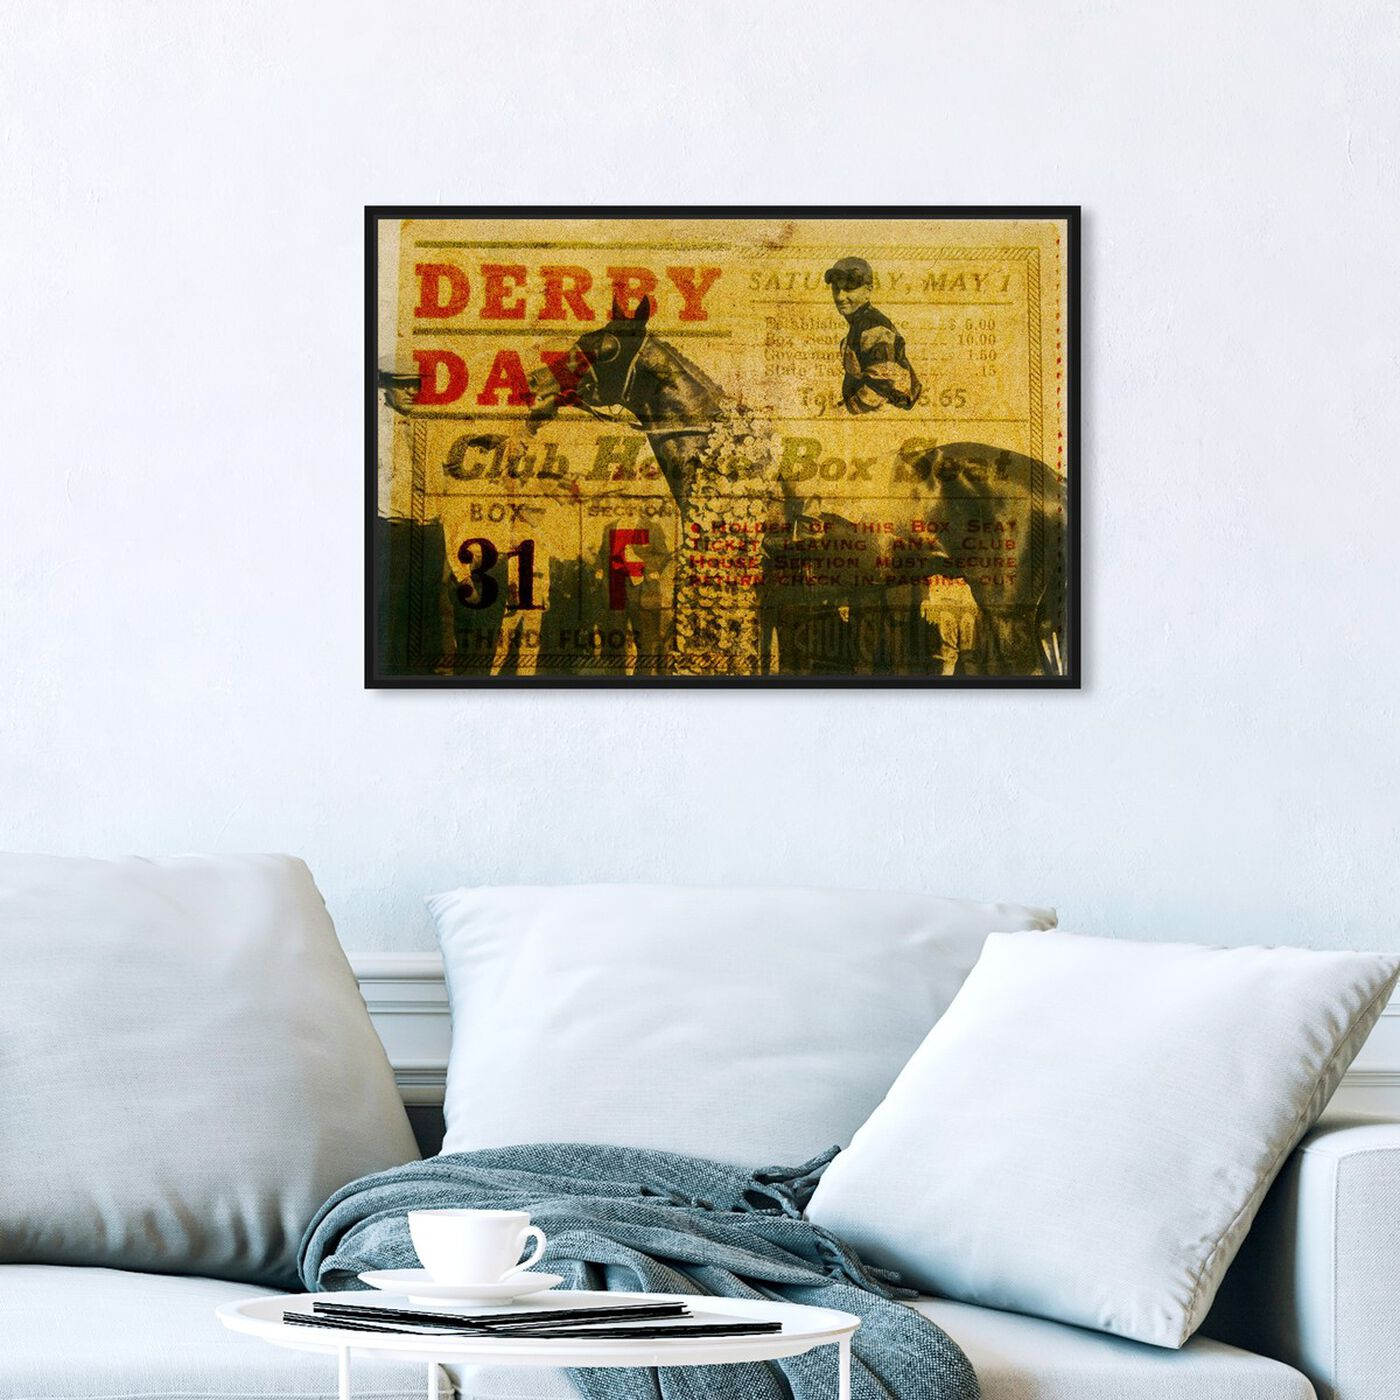 Hanging view of Derby Day 1943 featuring advertising and posters art.